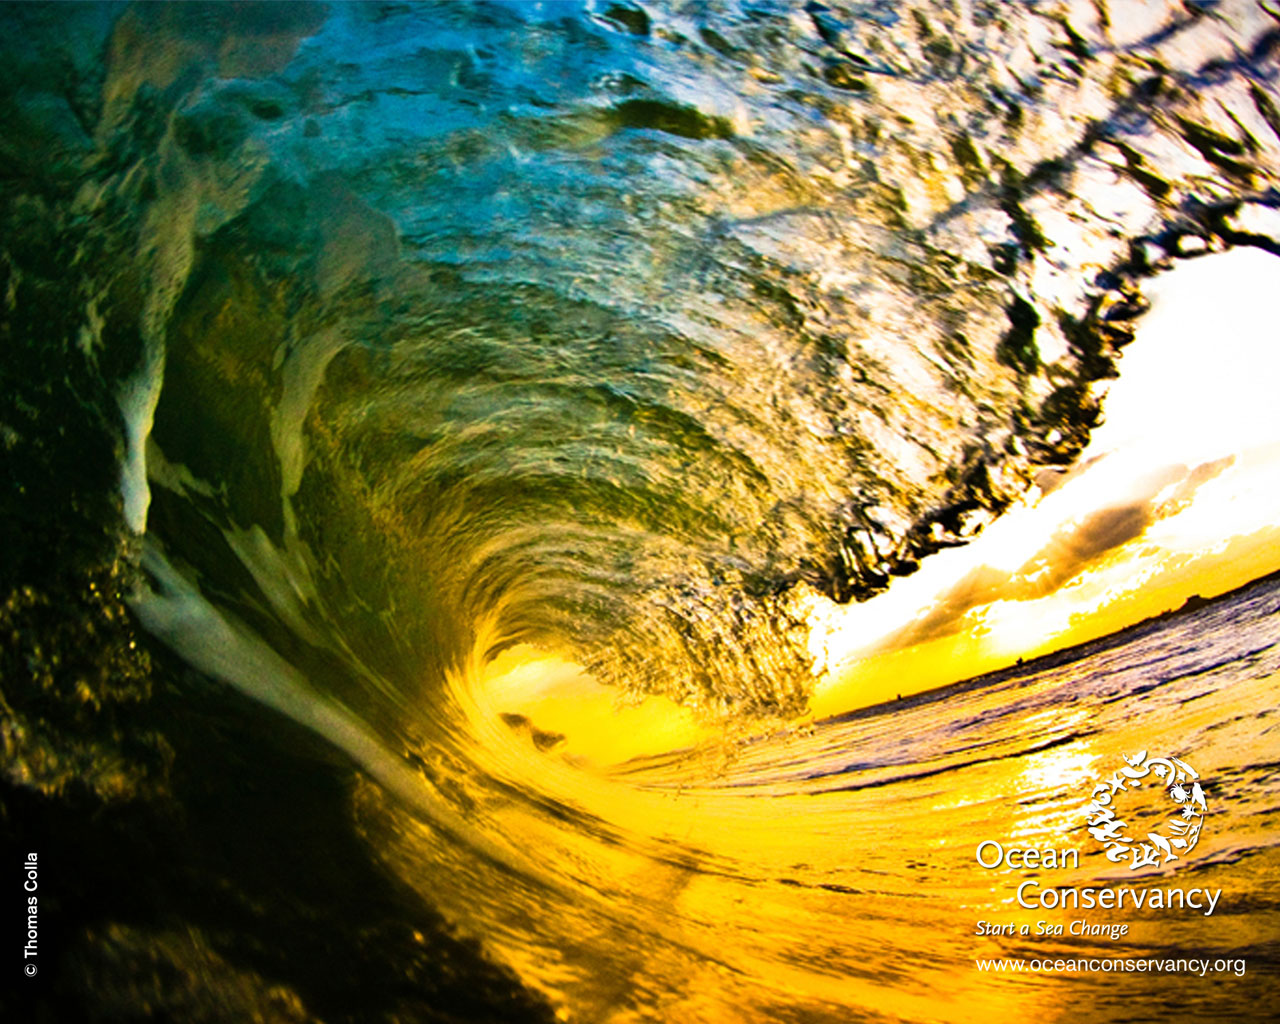 Wave desktop wallpaper wallpapersafari - Ocean pictures for desktop background ...